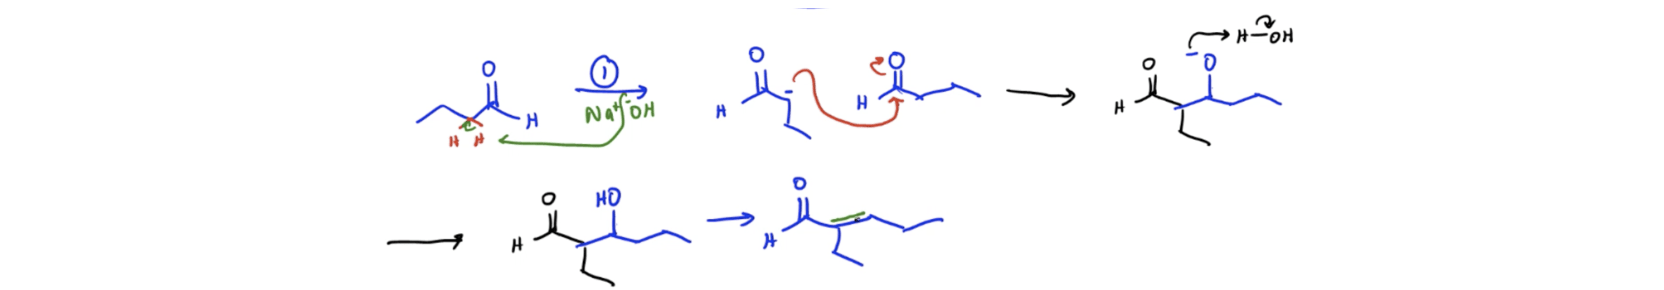 Aldol Condensation Mechanism